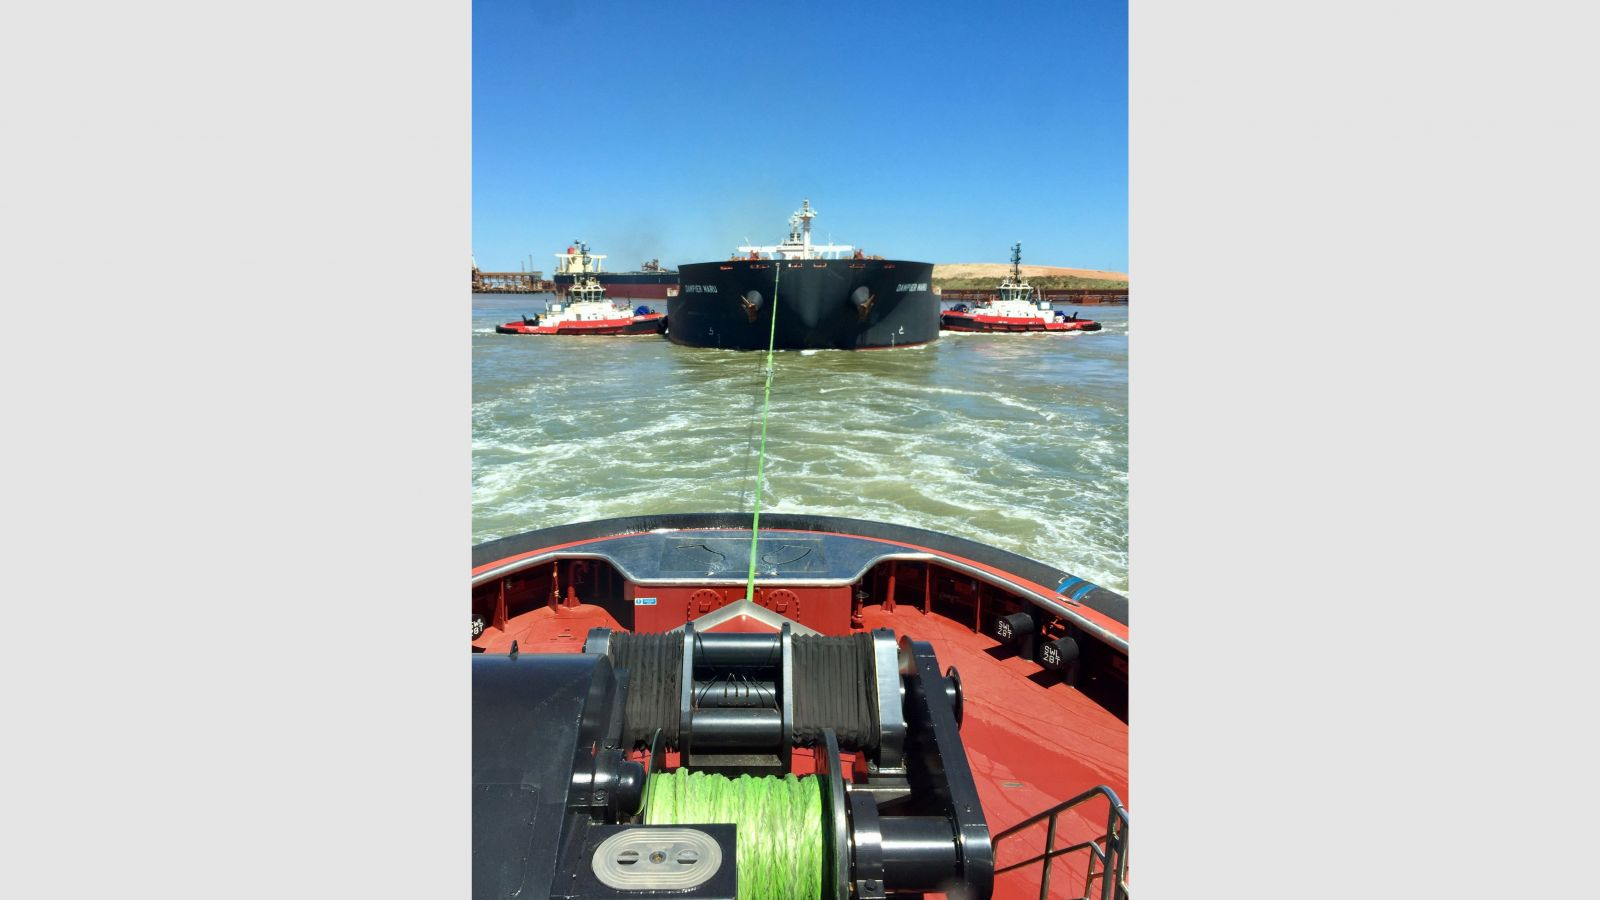 Markey DESF-48-400HP winch onboard M/V